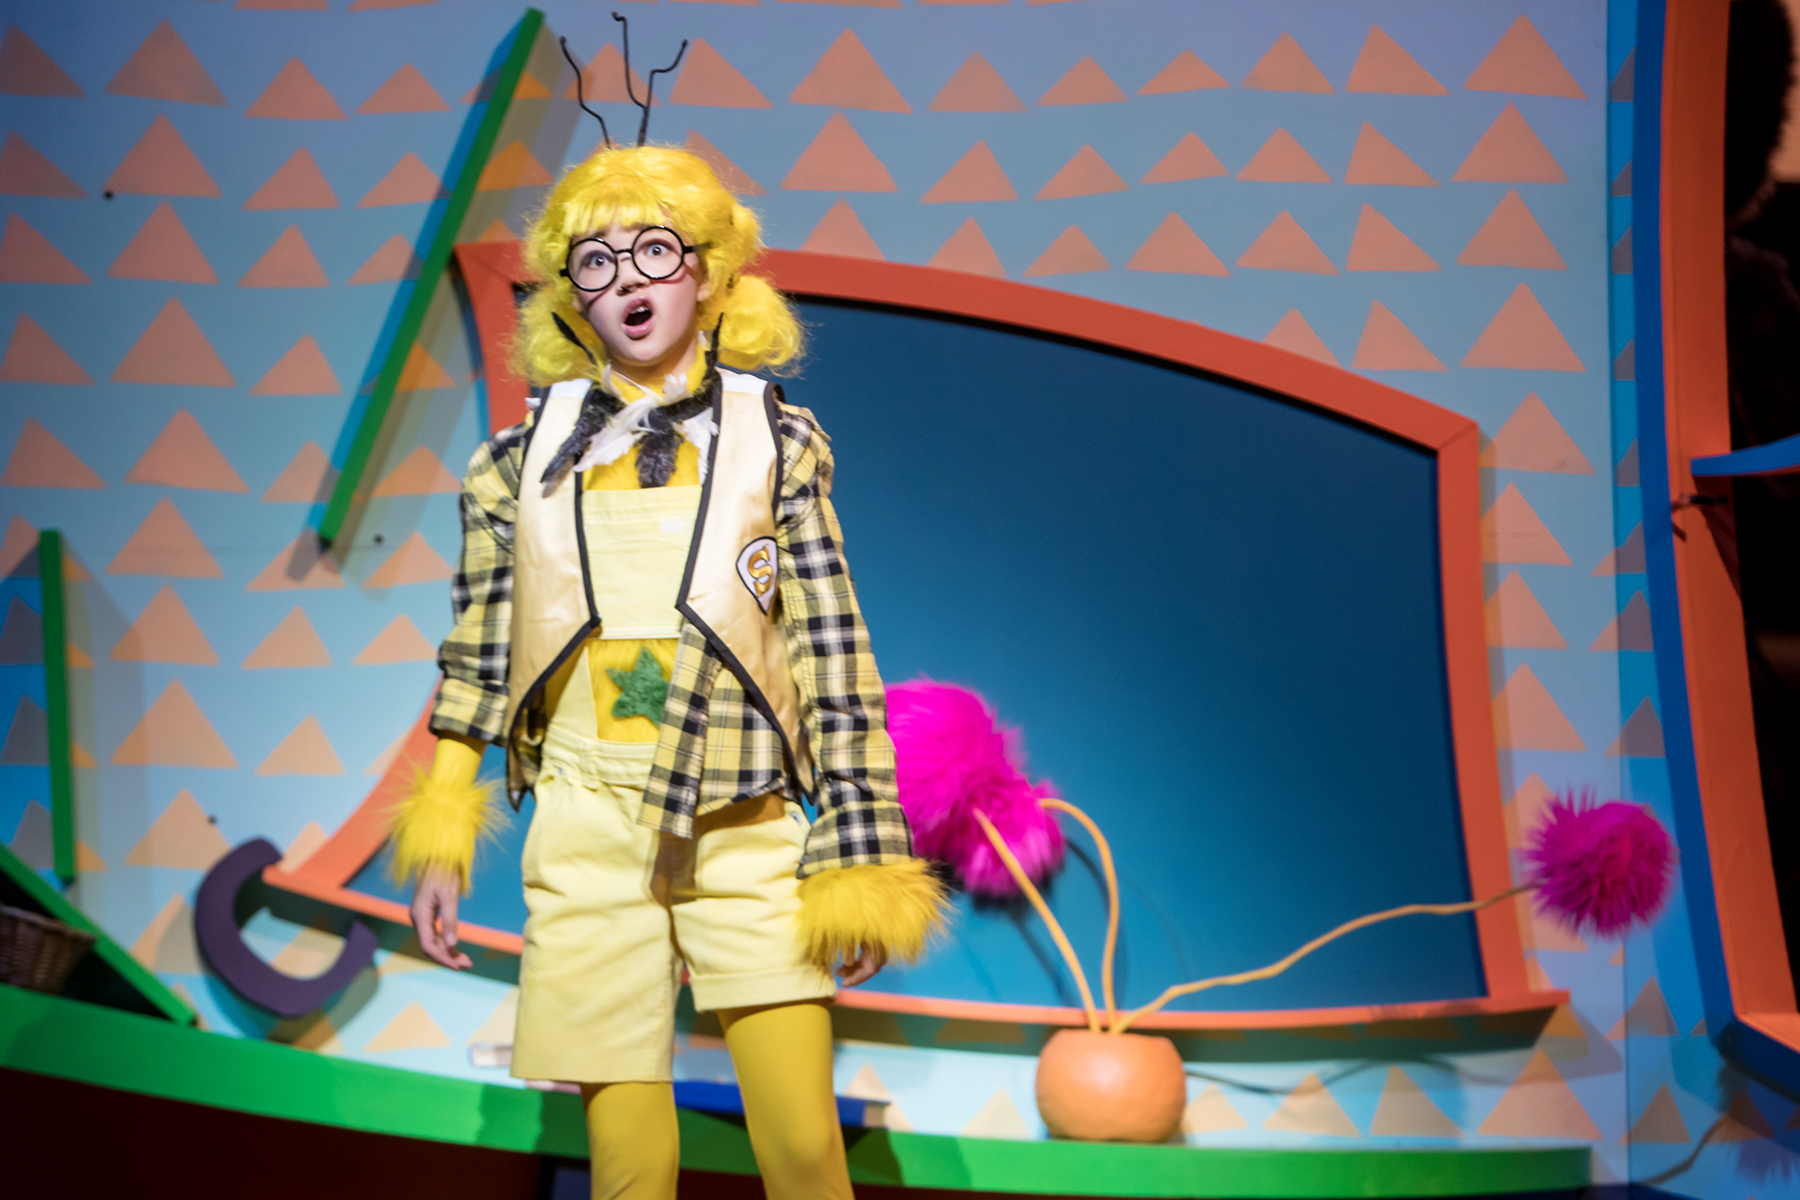 5Q: Dr. Seuss's The Sneetches The Musical